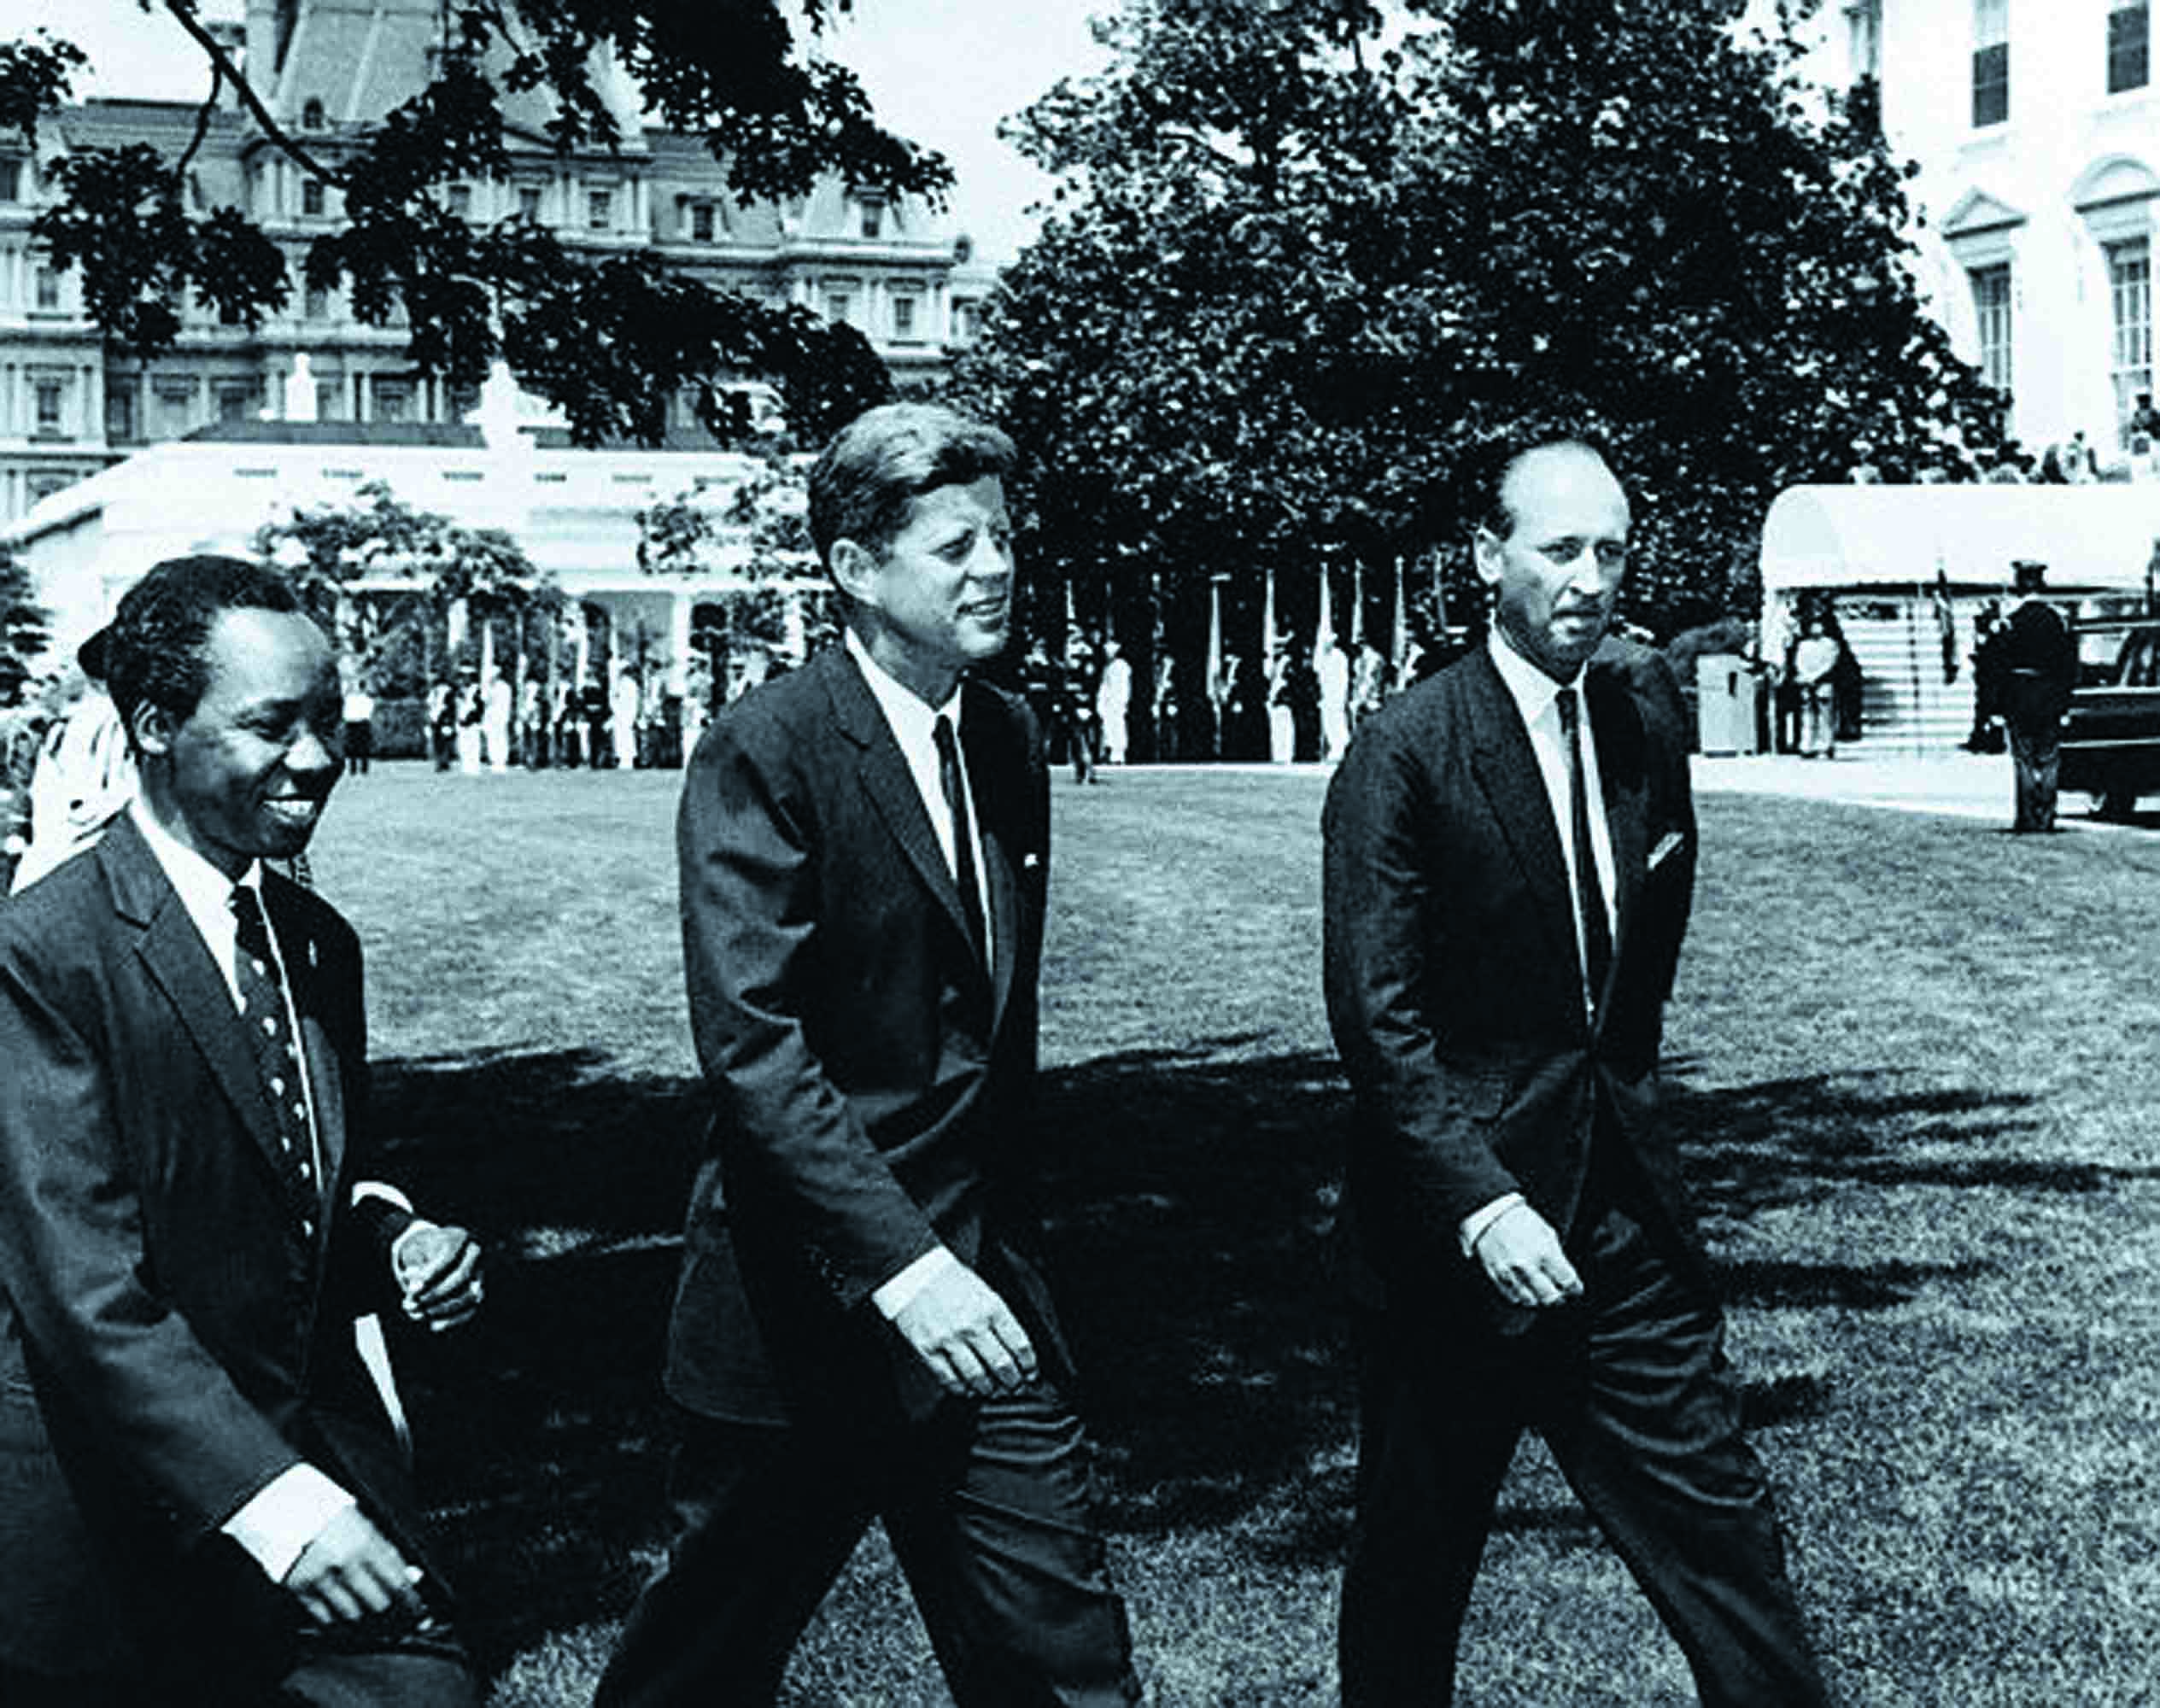 the-president-of-tangahyika-julius-k-nyerere-left-on-his-official-visit-to-the-kennedy-white-house-in-1963-tangahyika-united-with-zanzibar-in-1964-and-is-now-called-tanzania